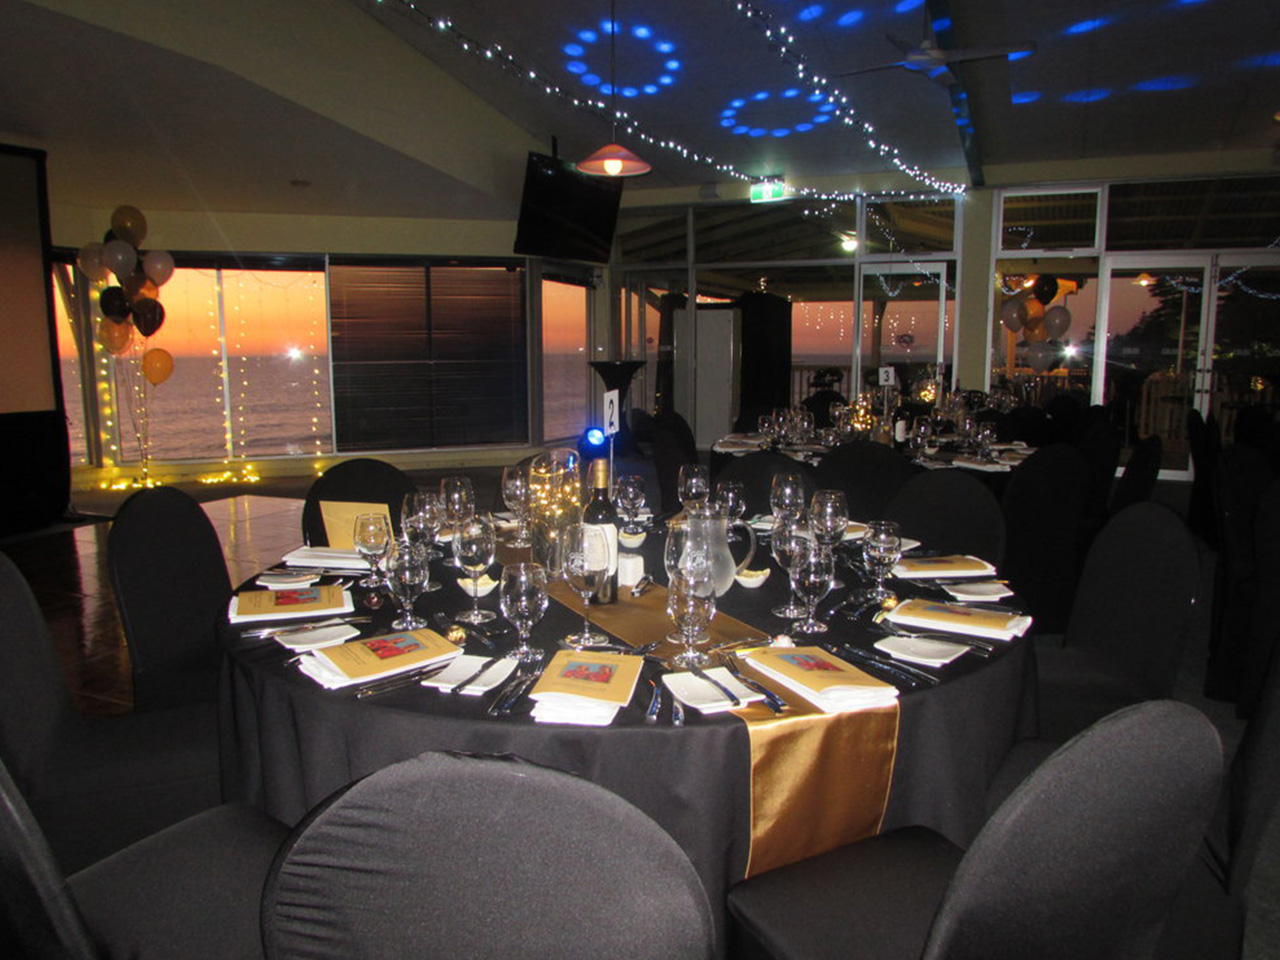 Chairs And Tables In Banquet Style With Lights And Balloons Inside The Function Room With Ocean View In Dusk